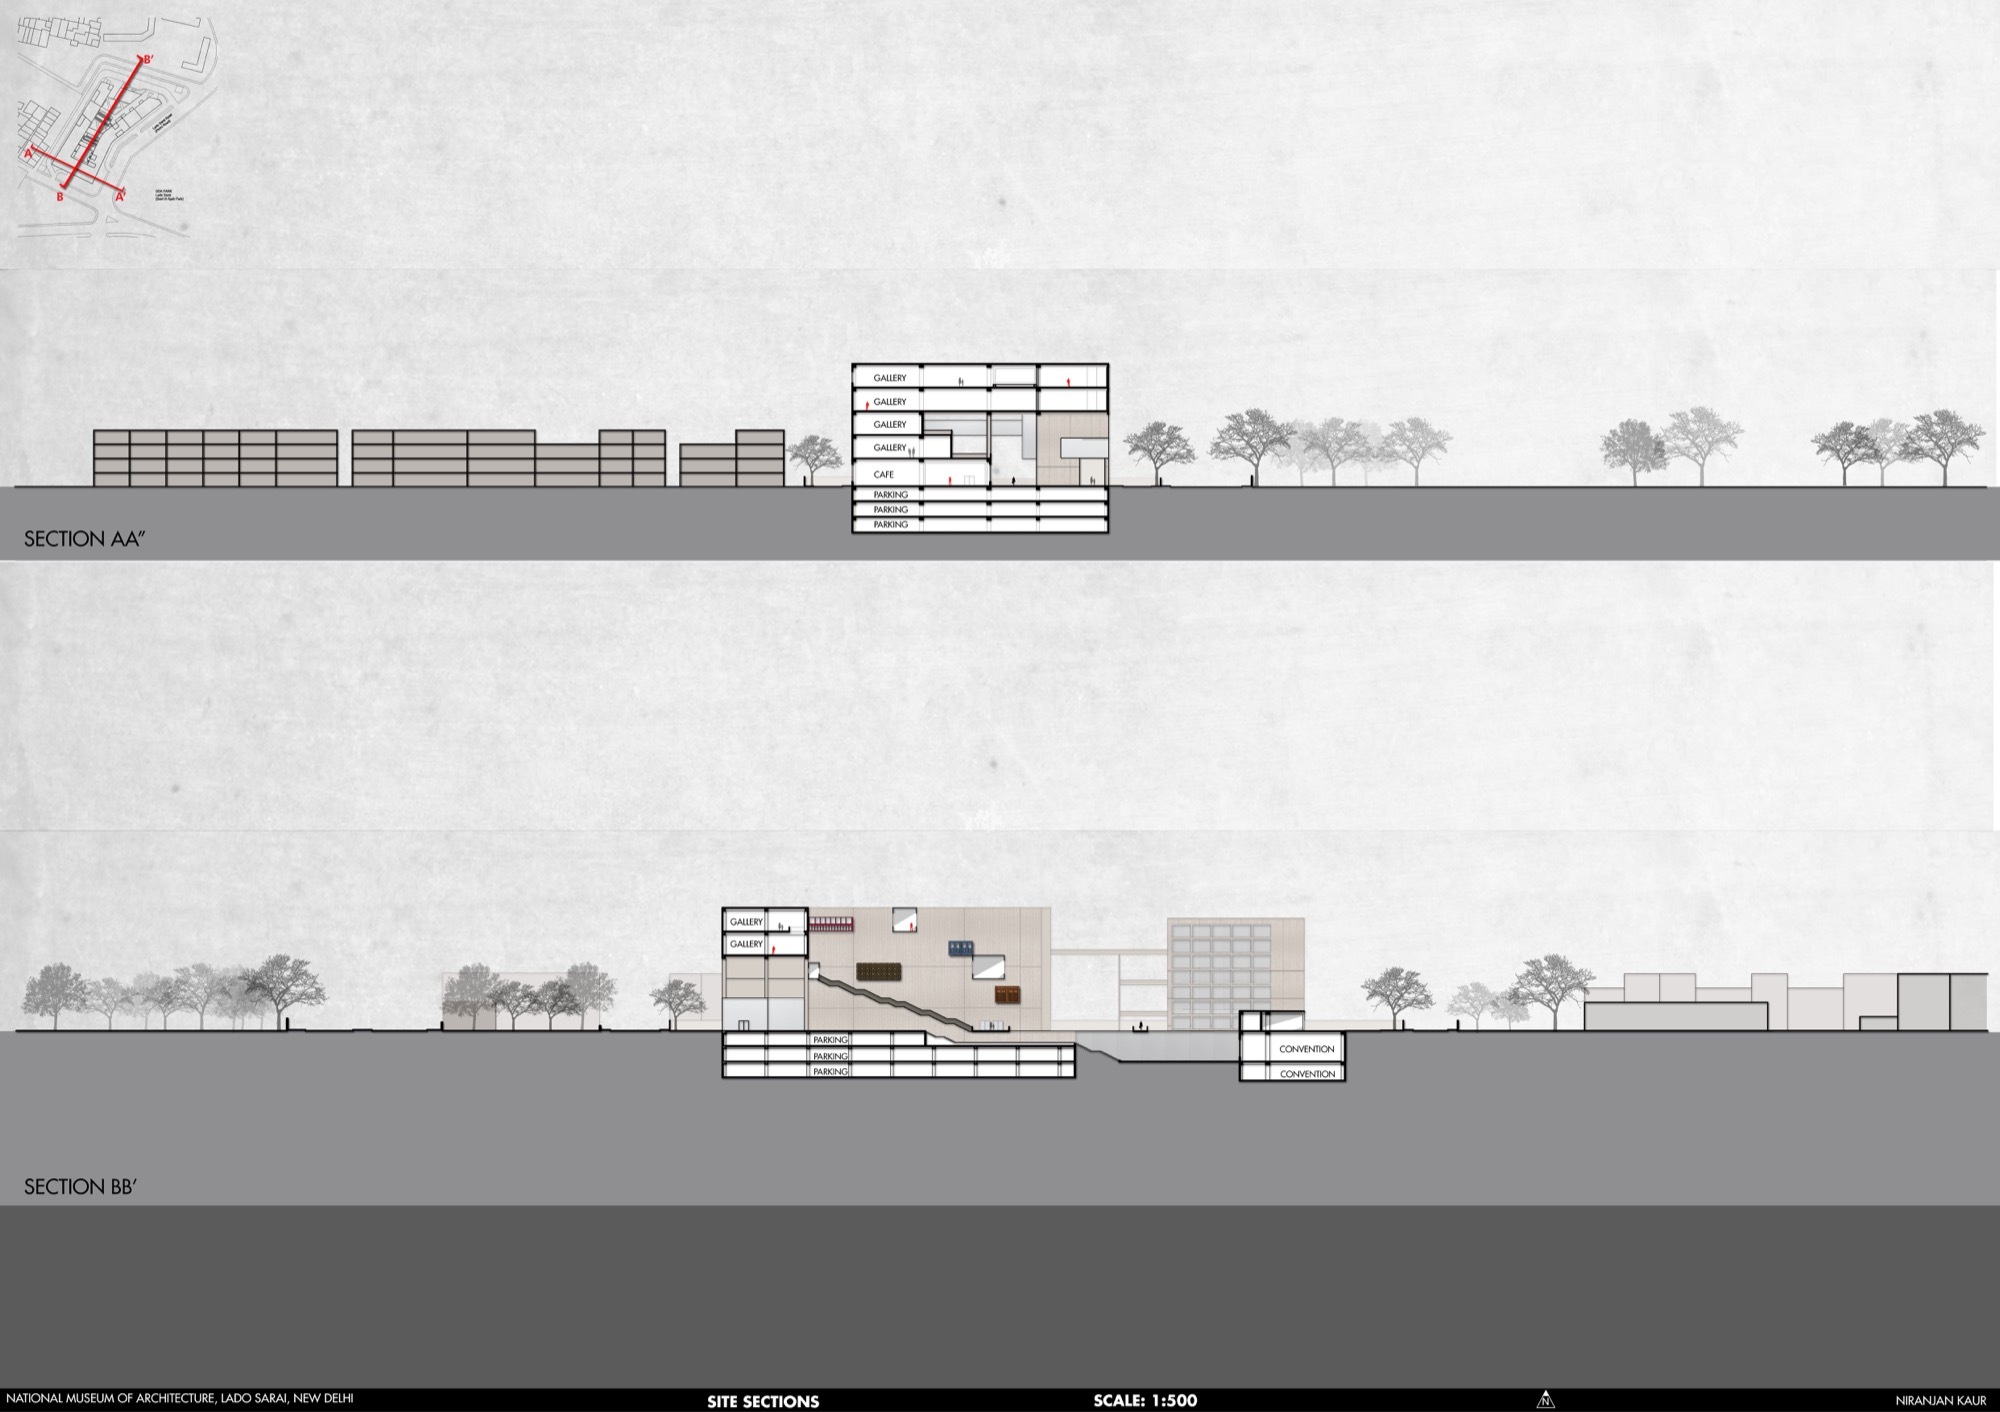 B.Arch Thesis: National Museum of Architecture, New Delhi, by Niranjan Kaur 37